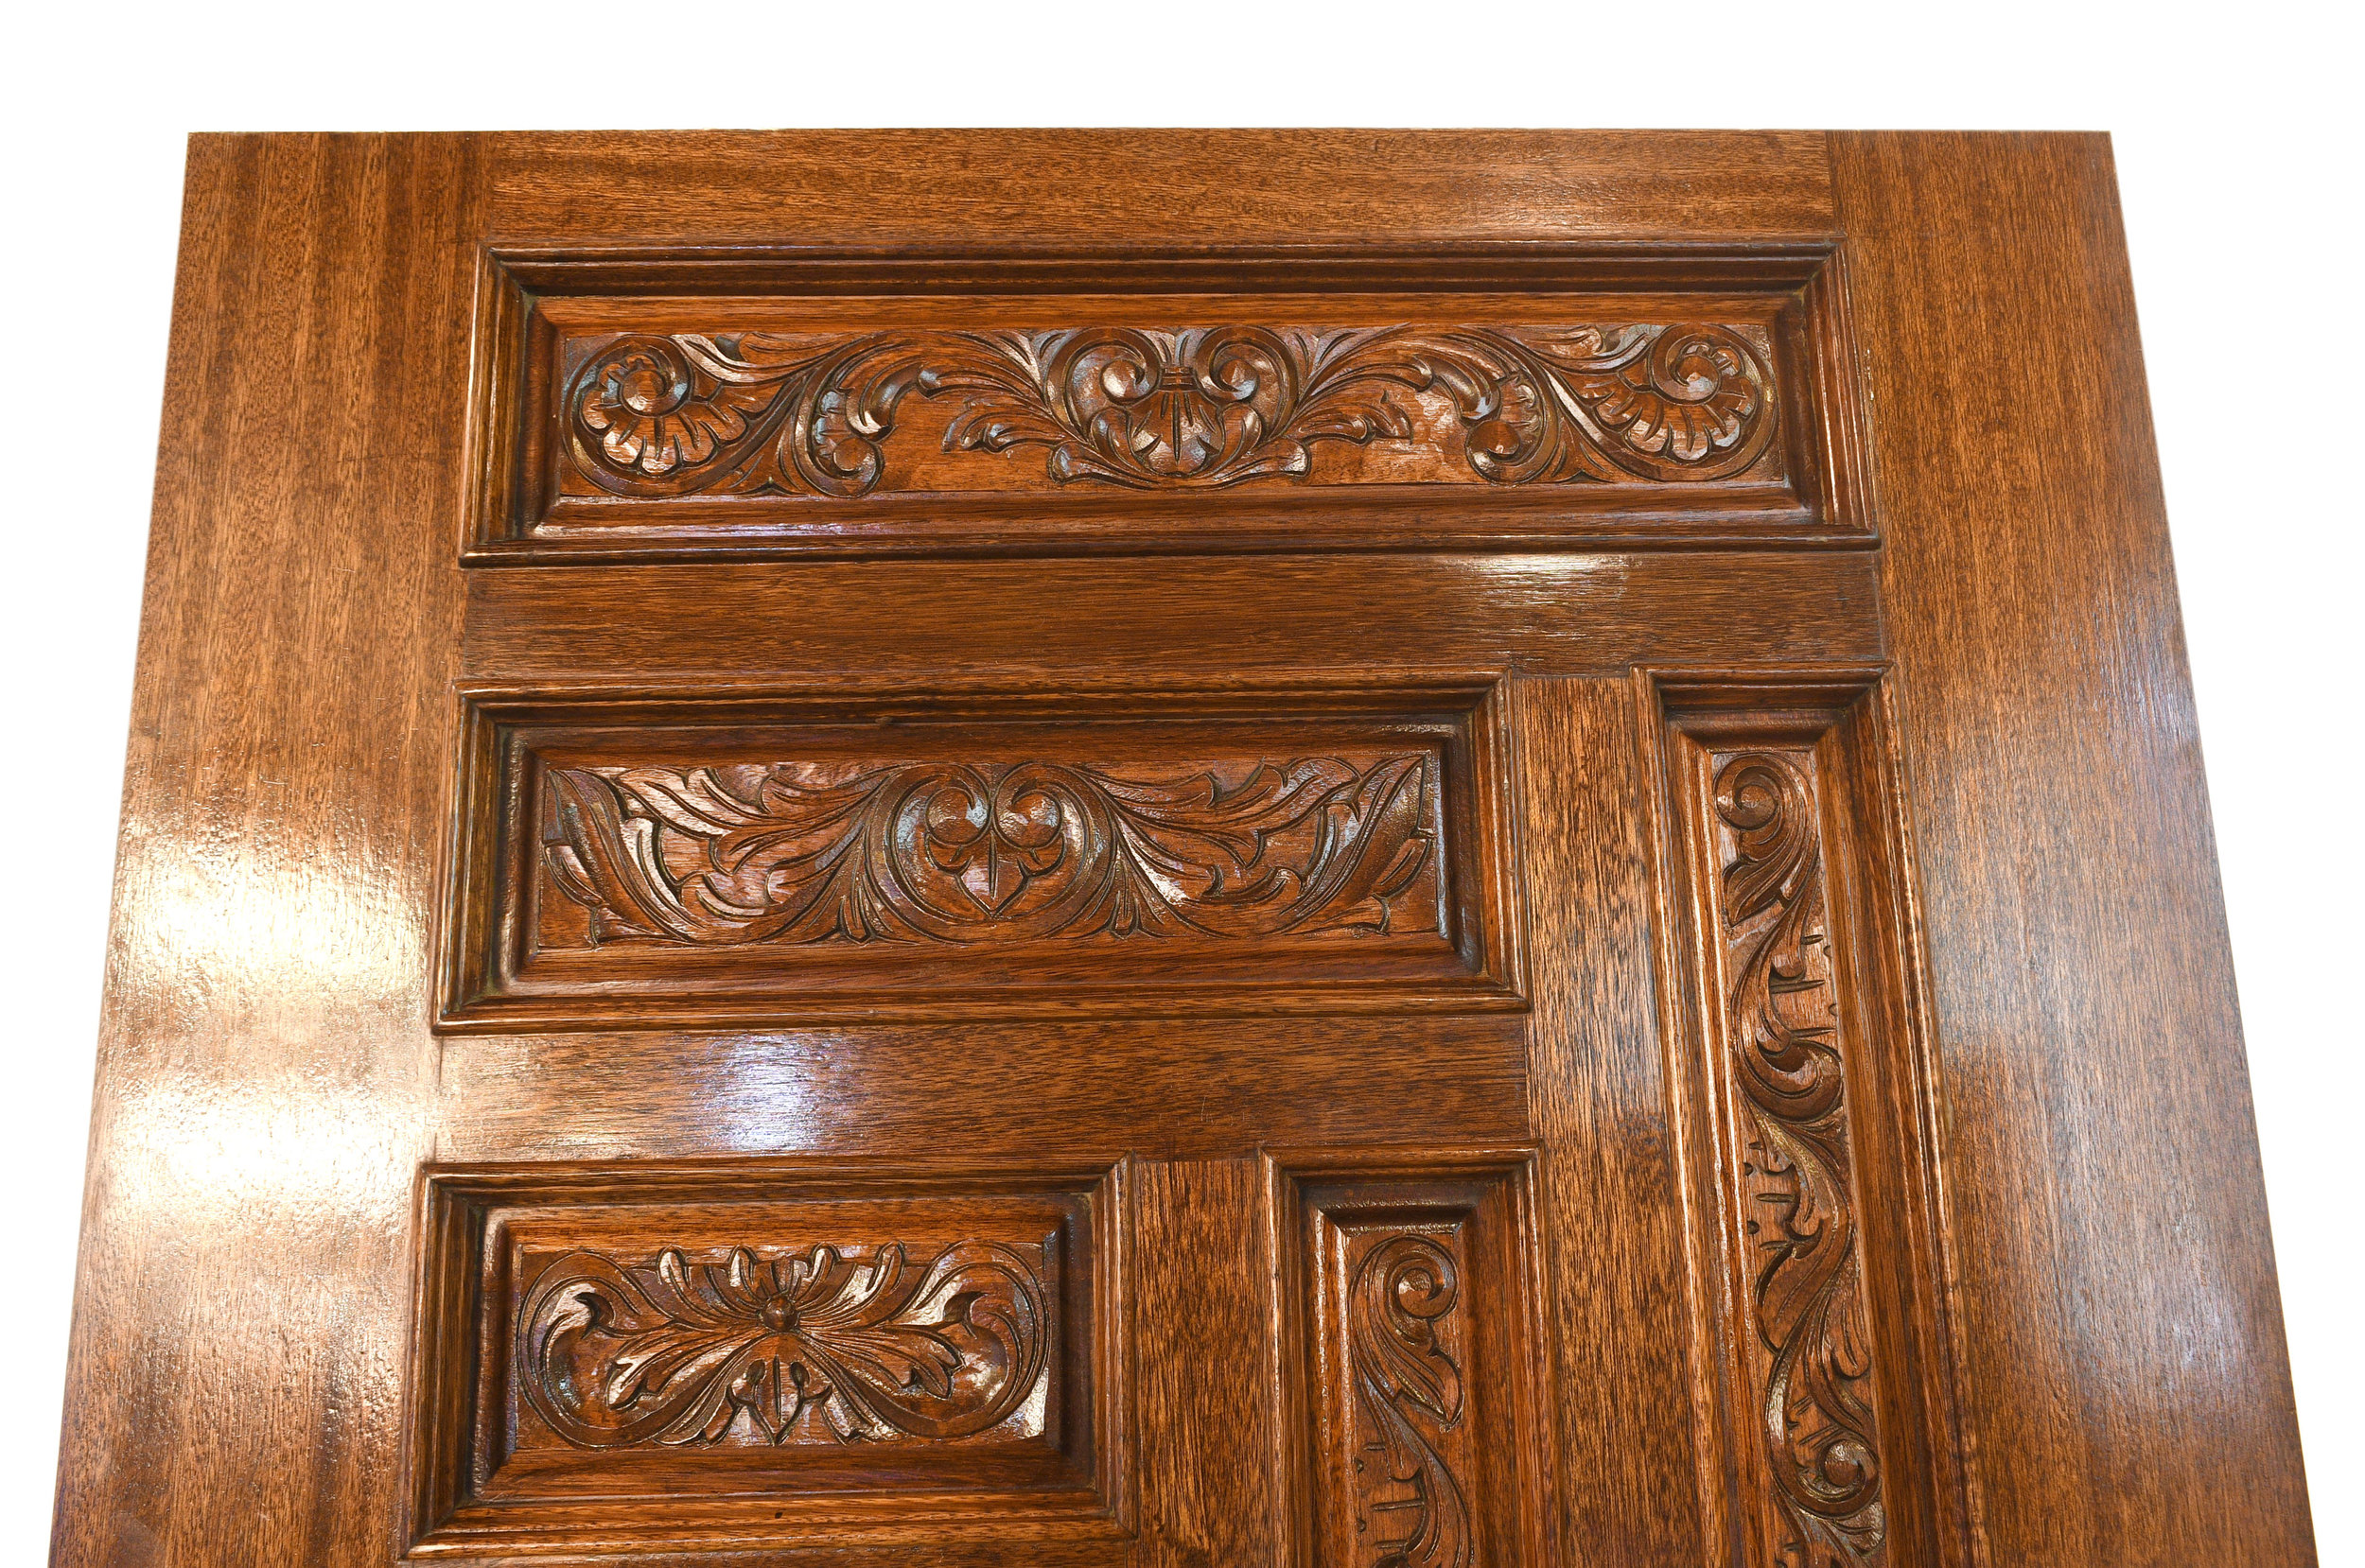 carved-wood-panel-4.jpg